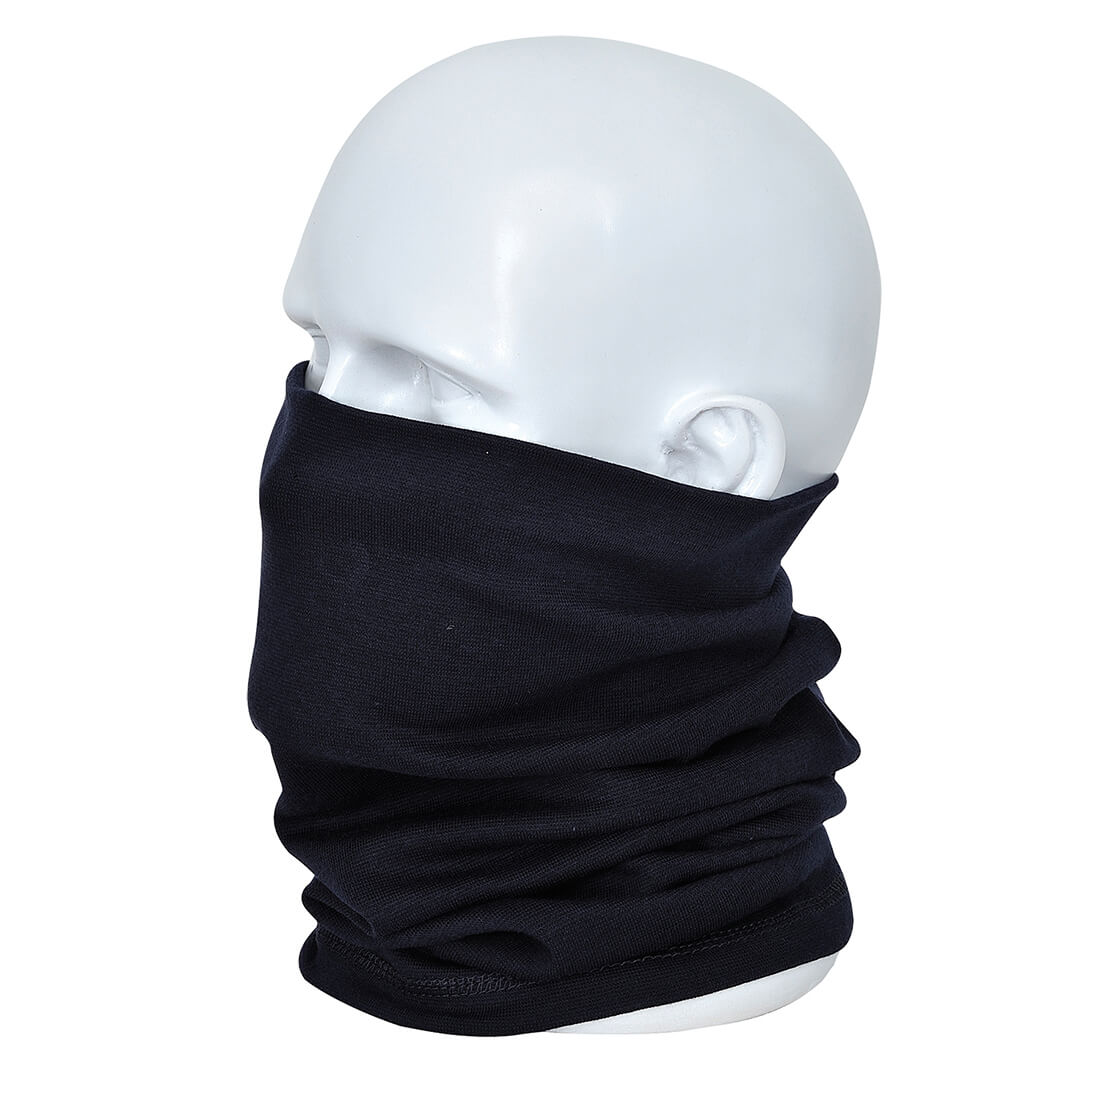 Image of Modaflame Flame Resistant Antistatic Neck Tube Navy One Size